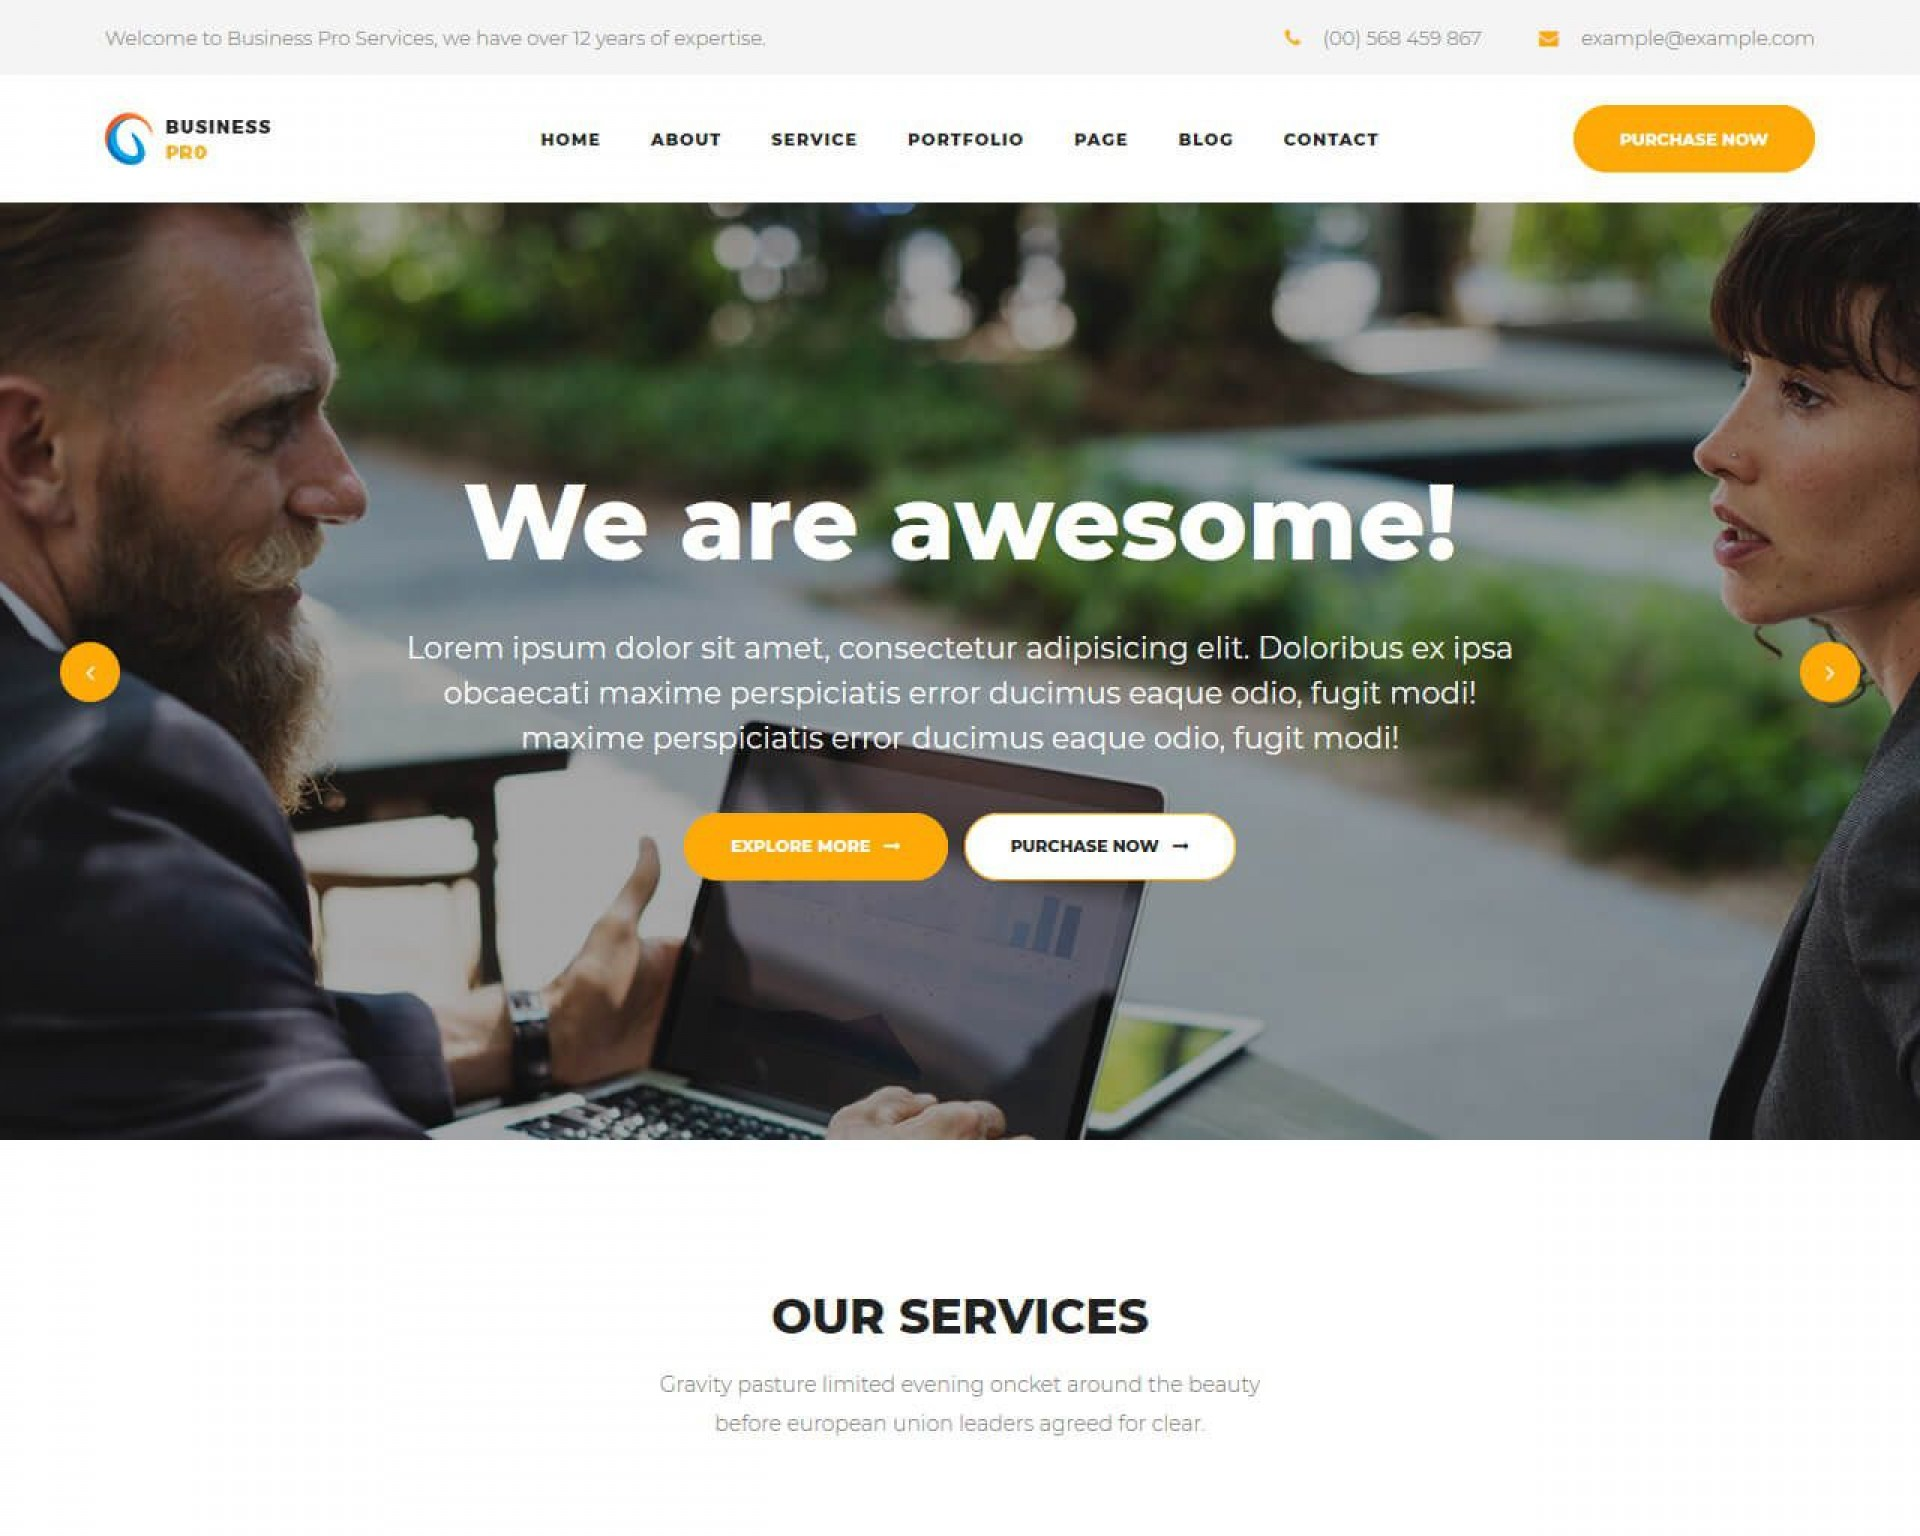 007 Wonderful Free Web Template Download Html And Cs For Busines Concept  Business Website Responsive With1920